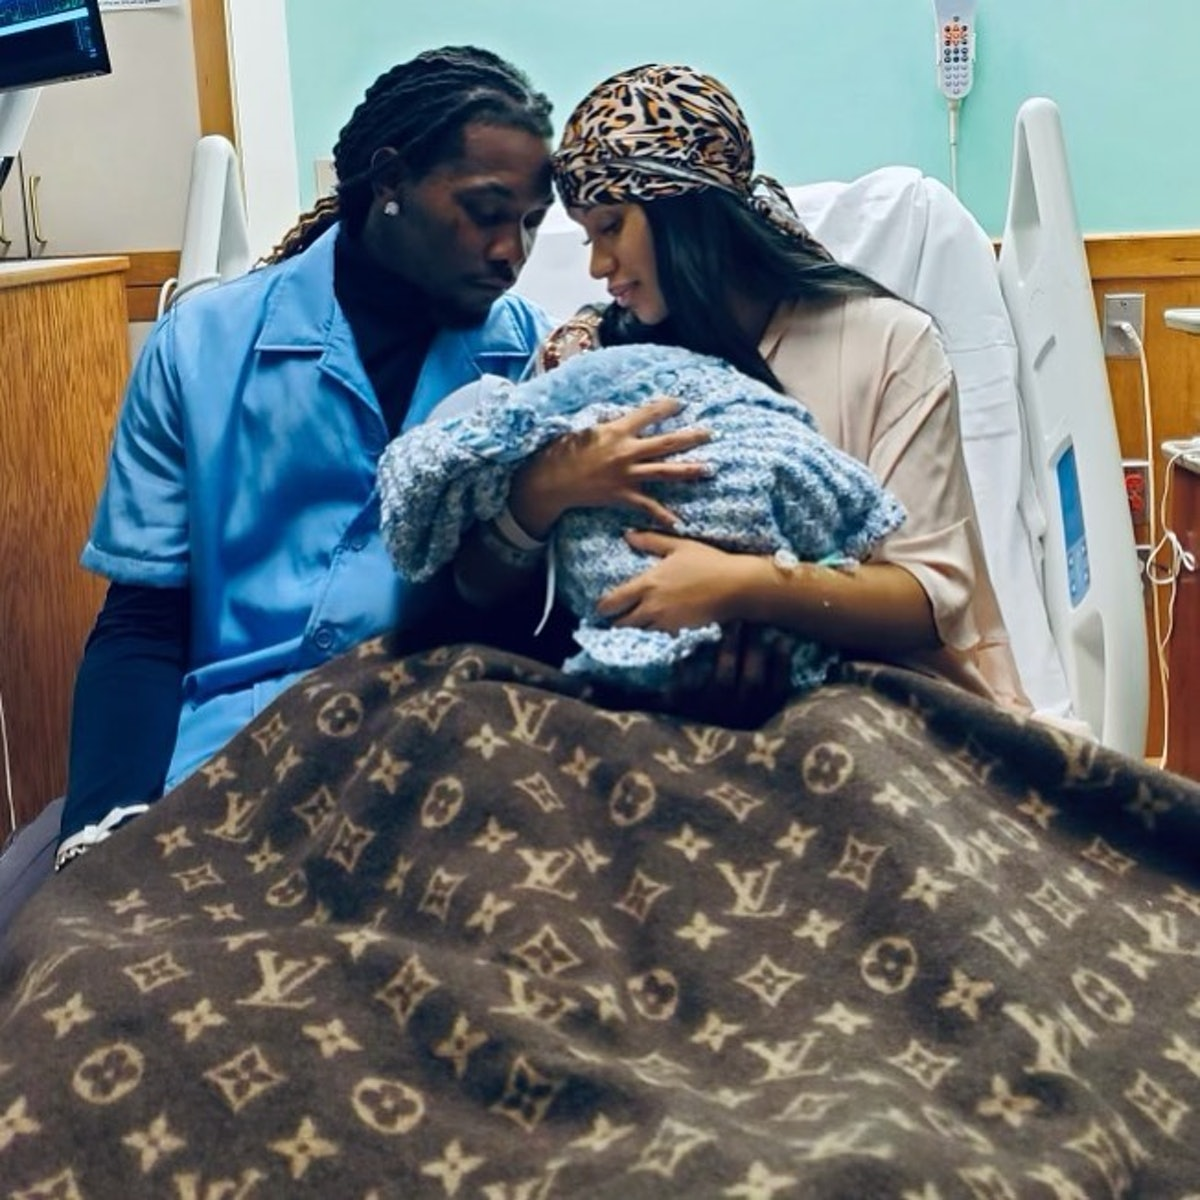 During Labor Day weekend in 2021, Cardi B and her husband Offset welcomed in their second child, who...